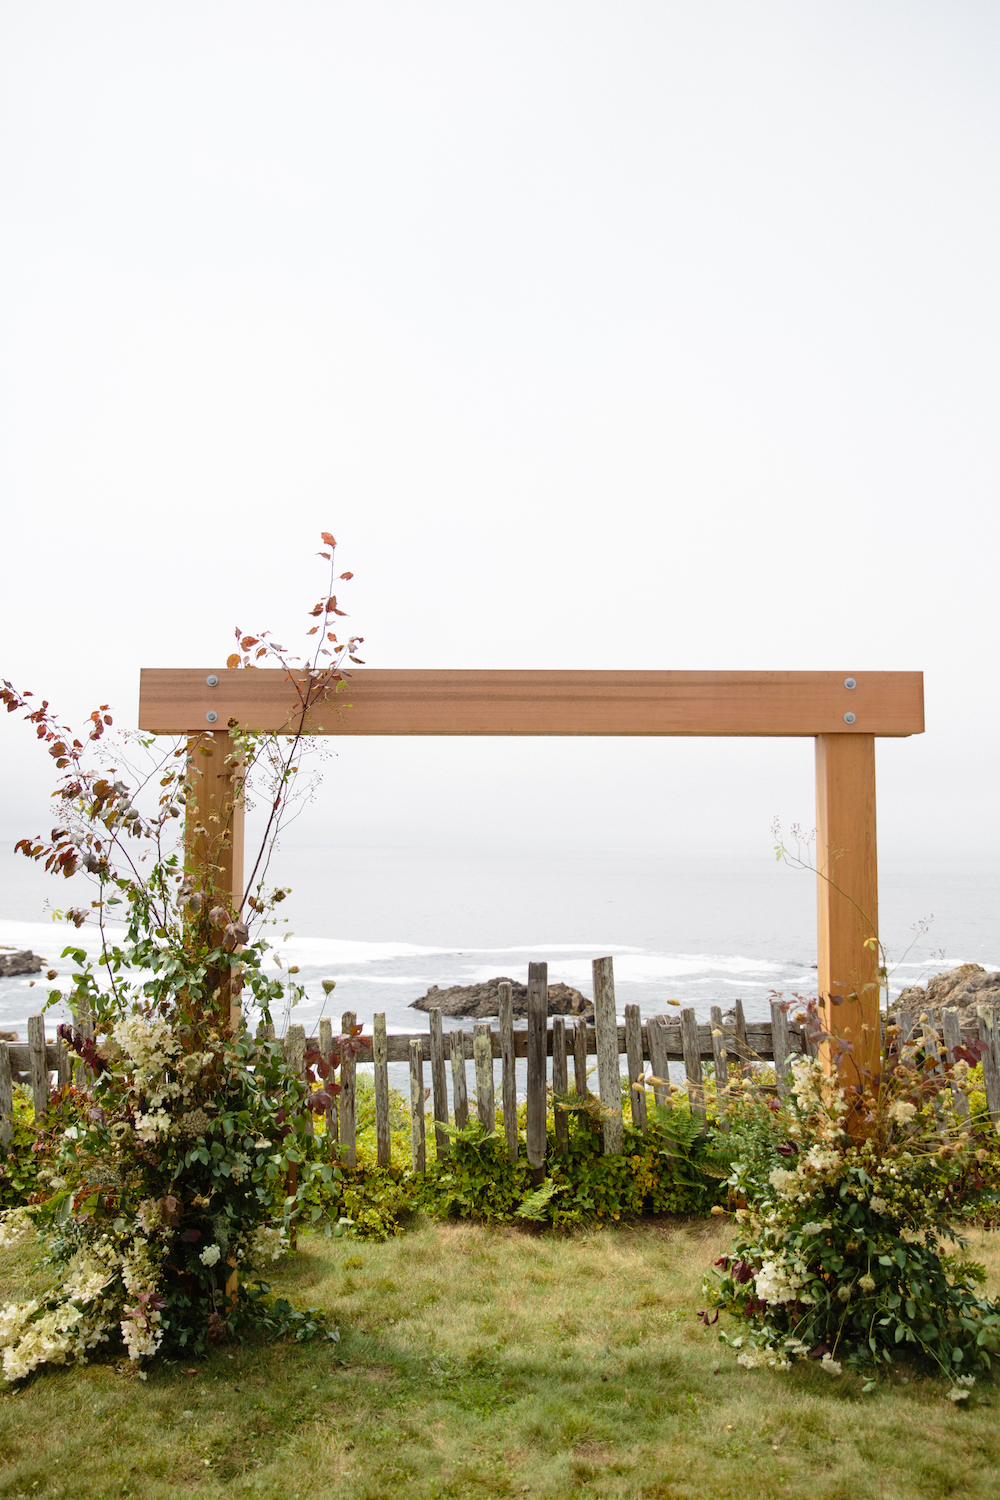 Our architect groom built this arbor, framing the iconic California coast at Sea Ranch.  Photo by Larissa Cleveland.  Event Design by DALD Events.